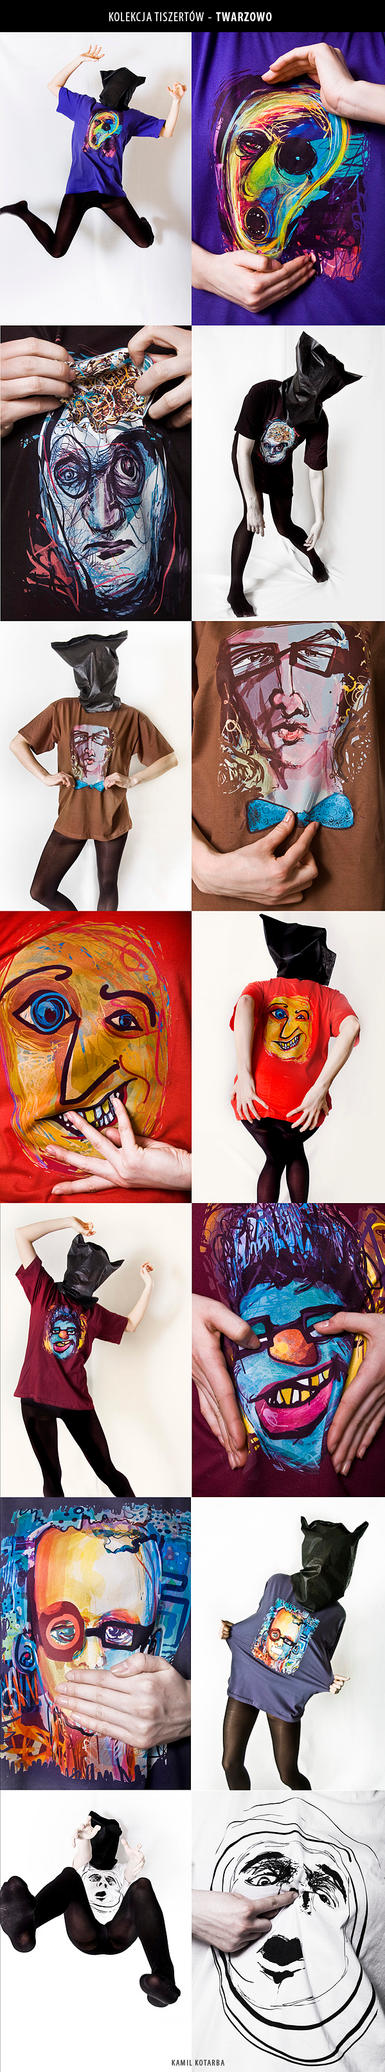 t-shirt collection. by kamilk